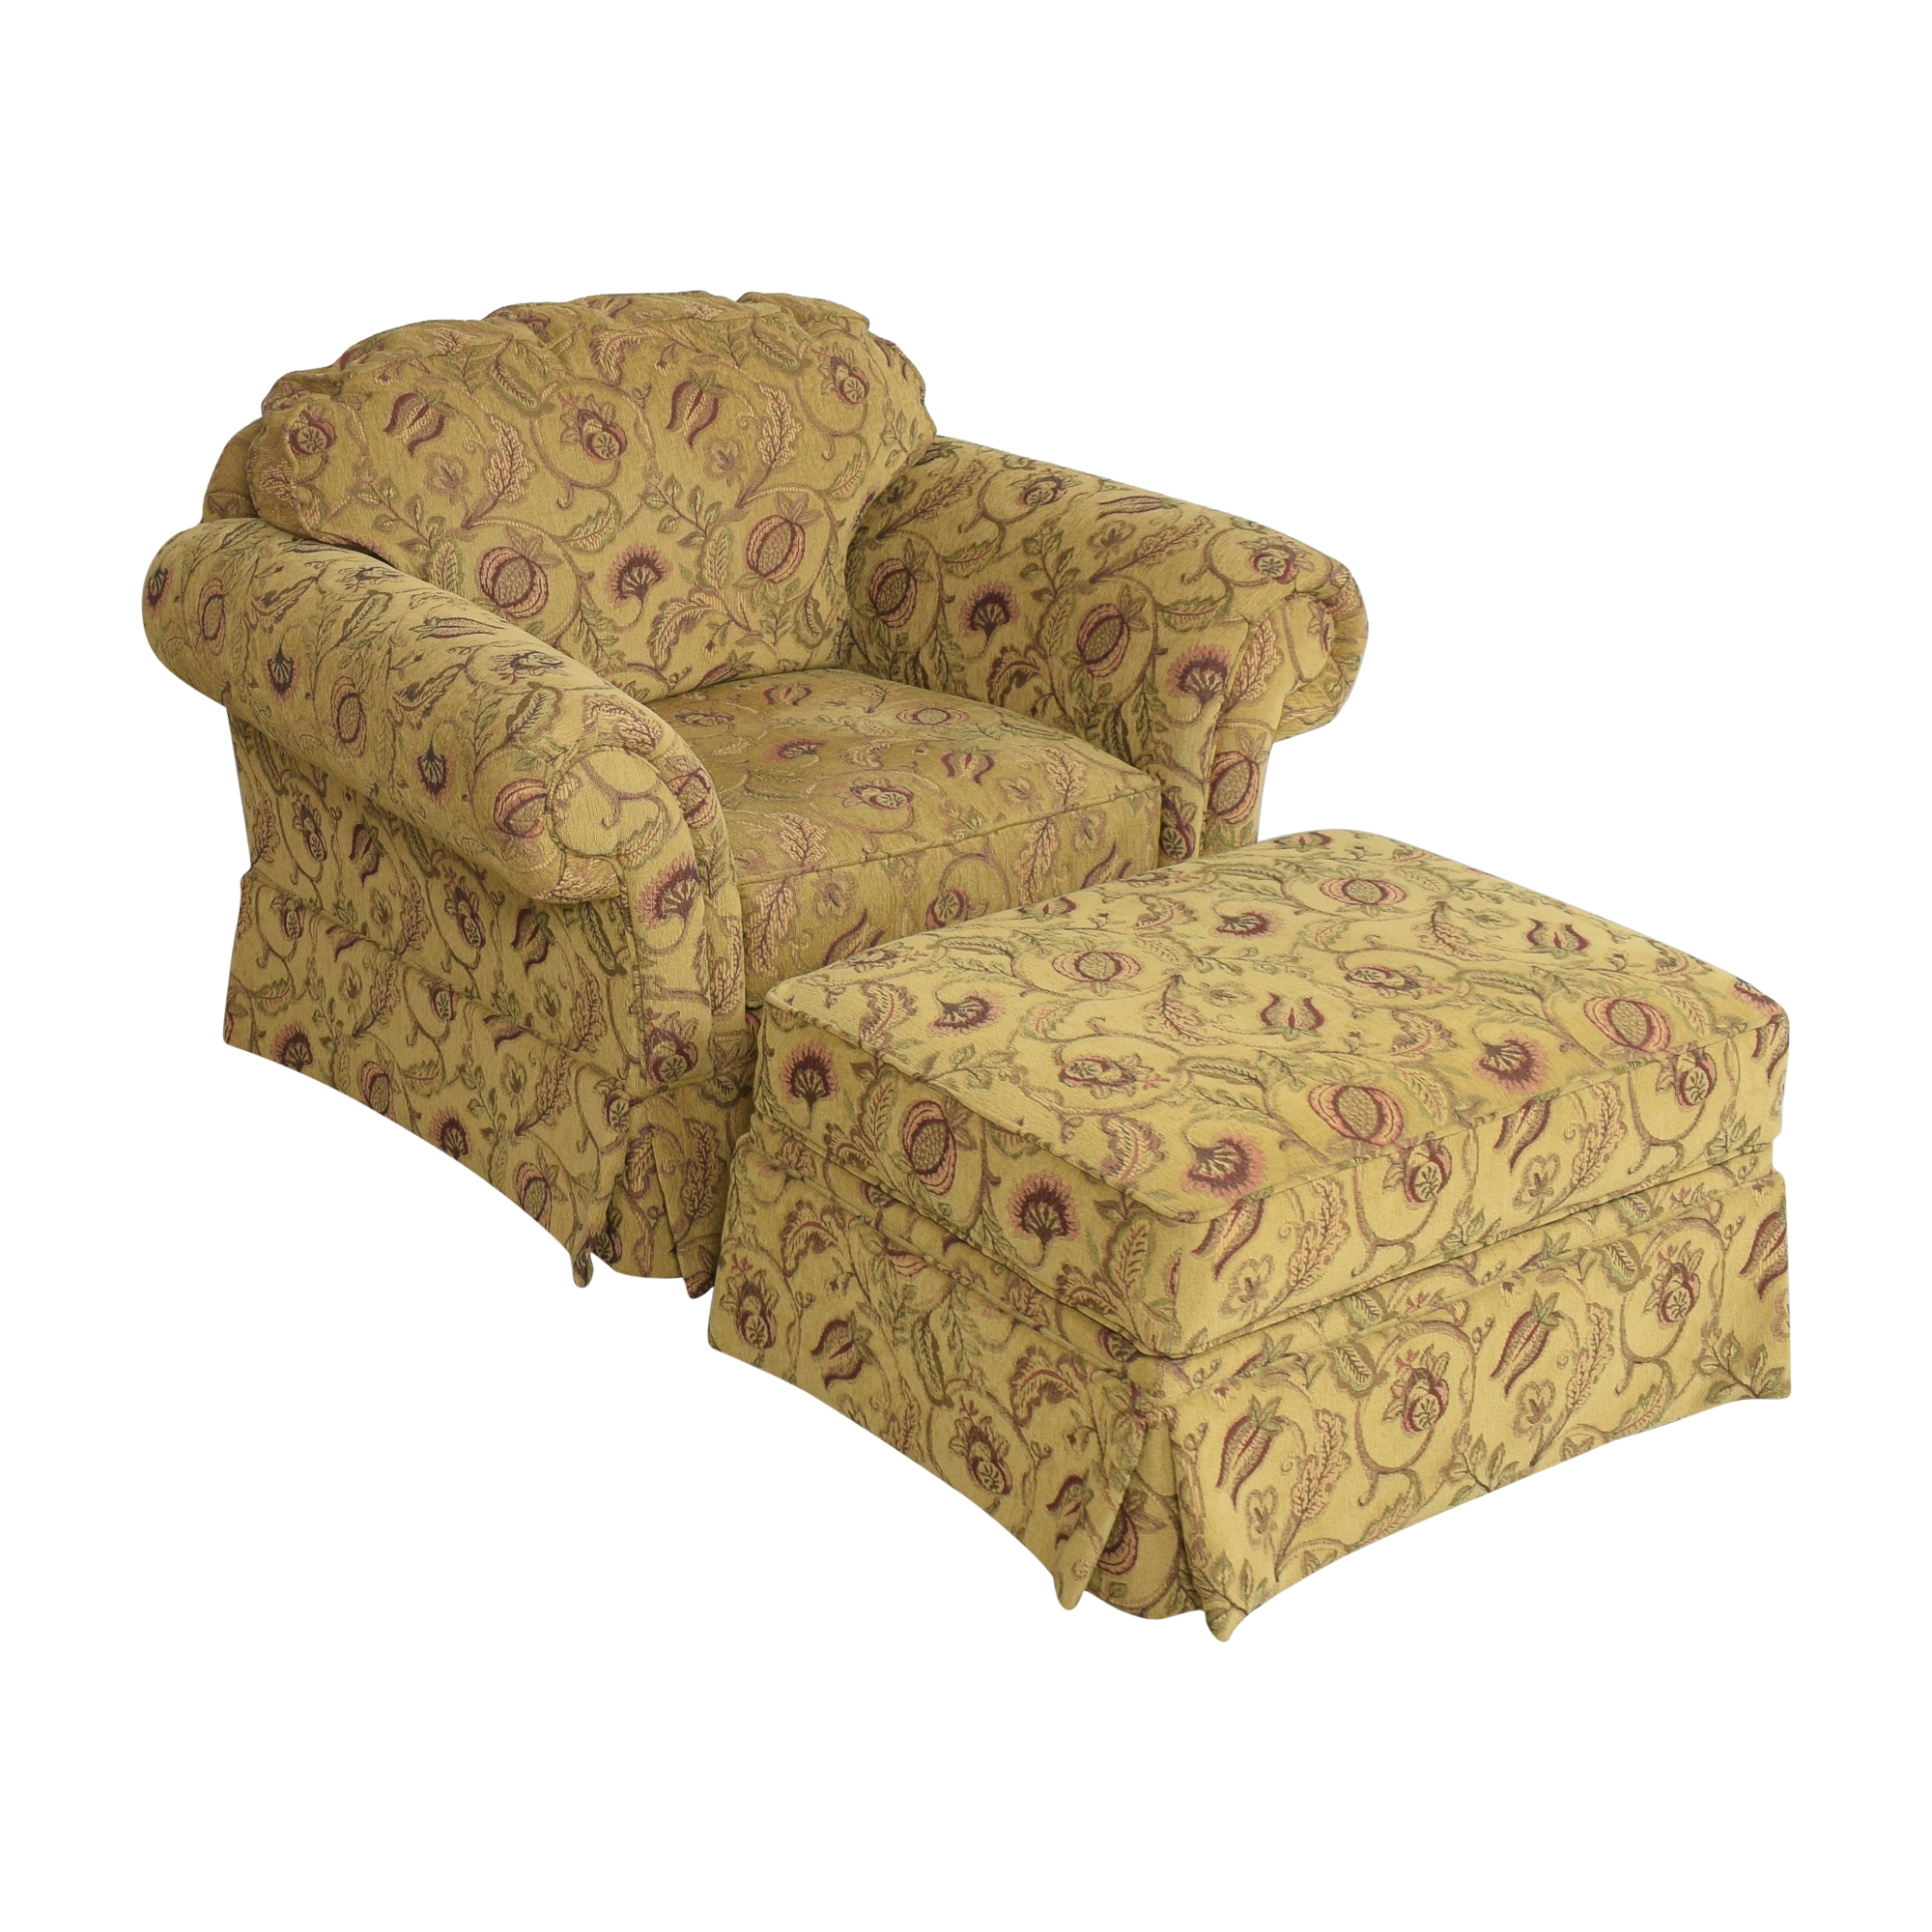 shop Broyhill Furniture Broyhill Furniture Roll Arm Chair with Ottoman online